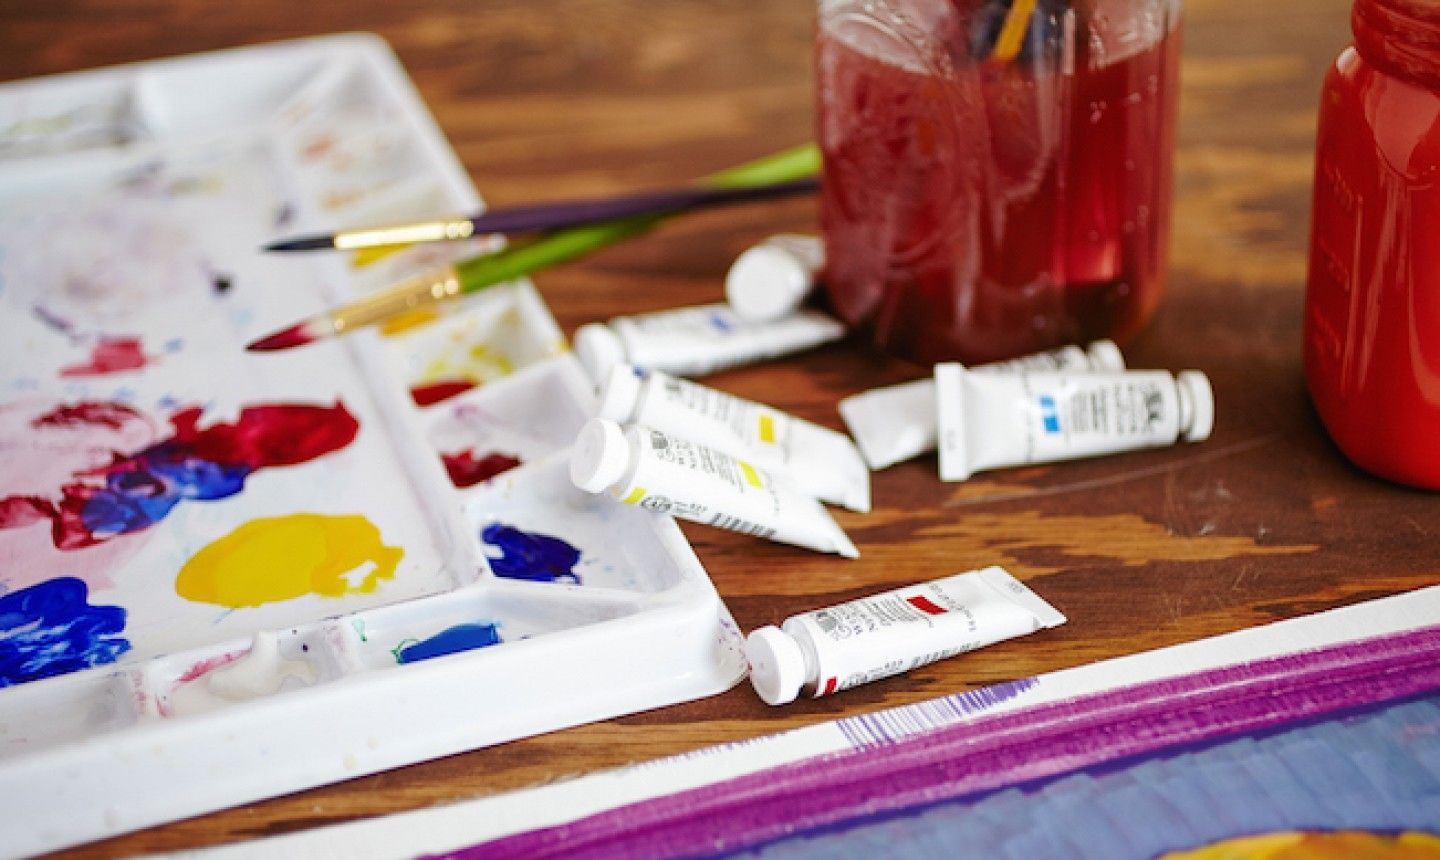 Getting Started With Gouache What Supplies Do You Need Gouache